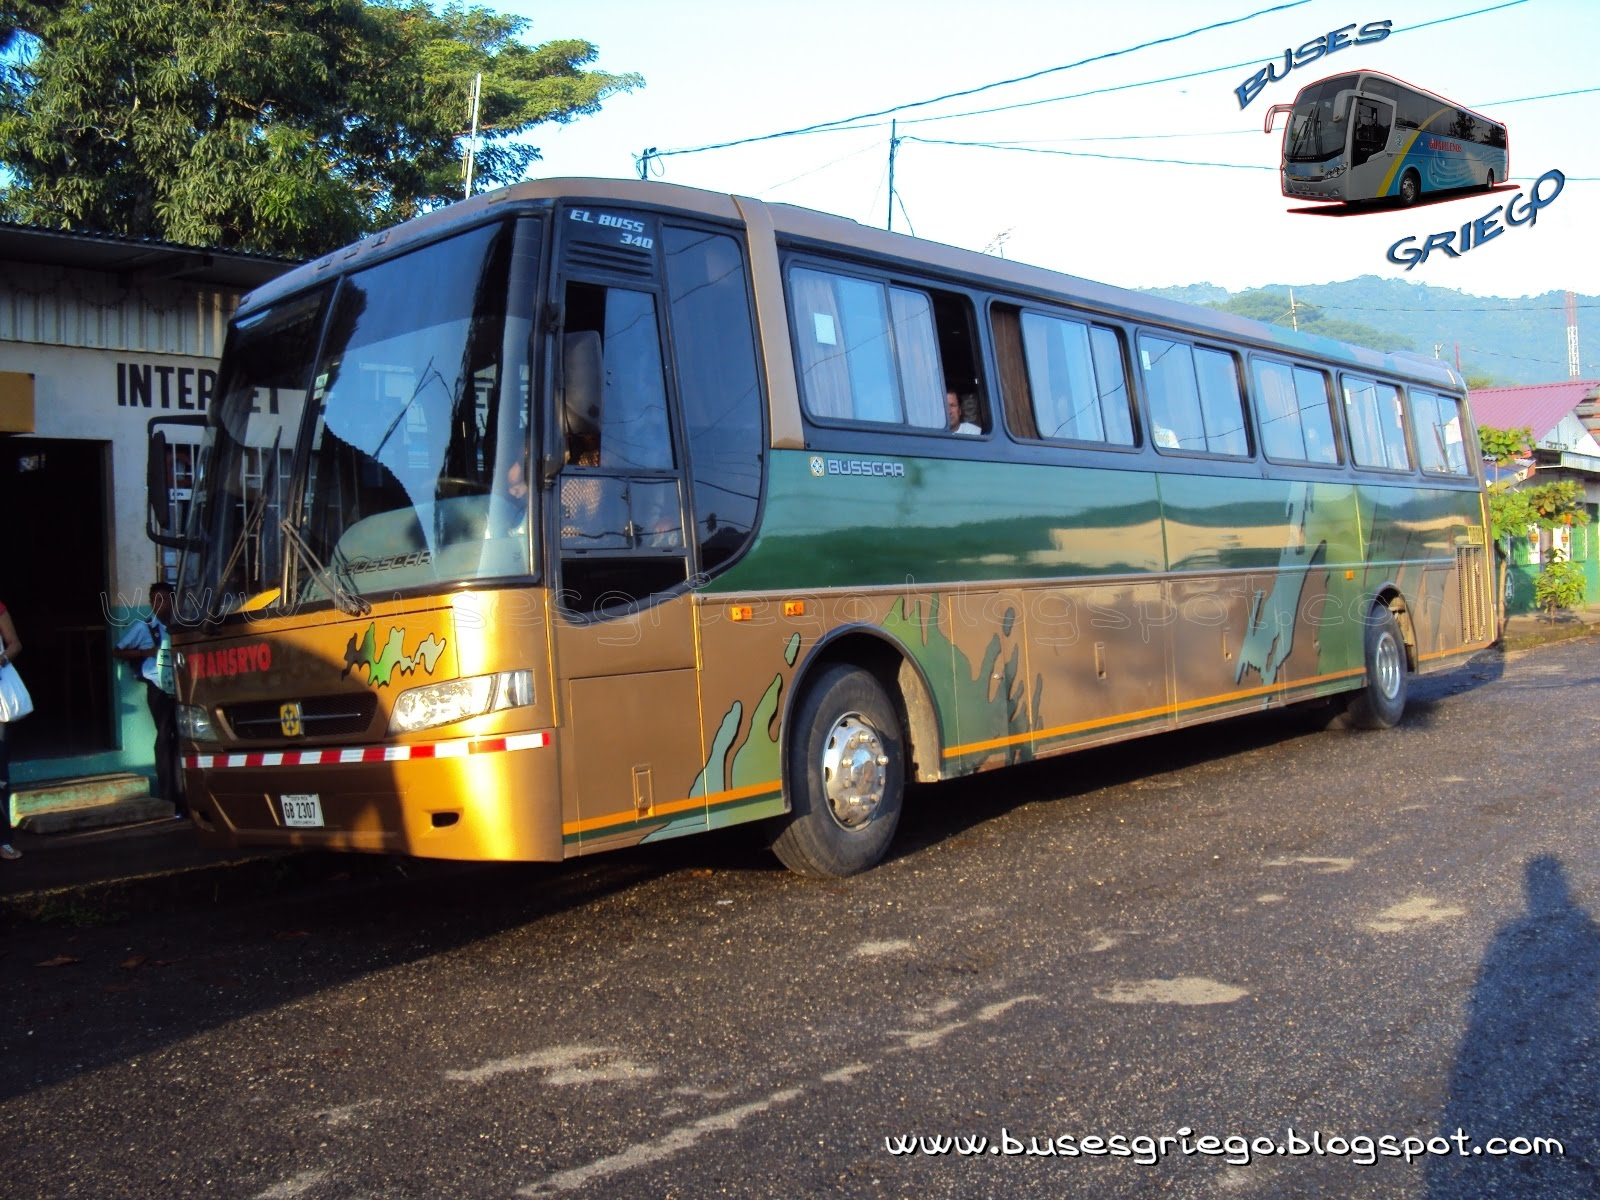 Buses griego galeria 9 09 09 10 for San jose mercedes benz